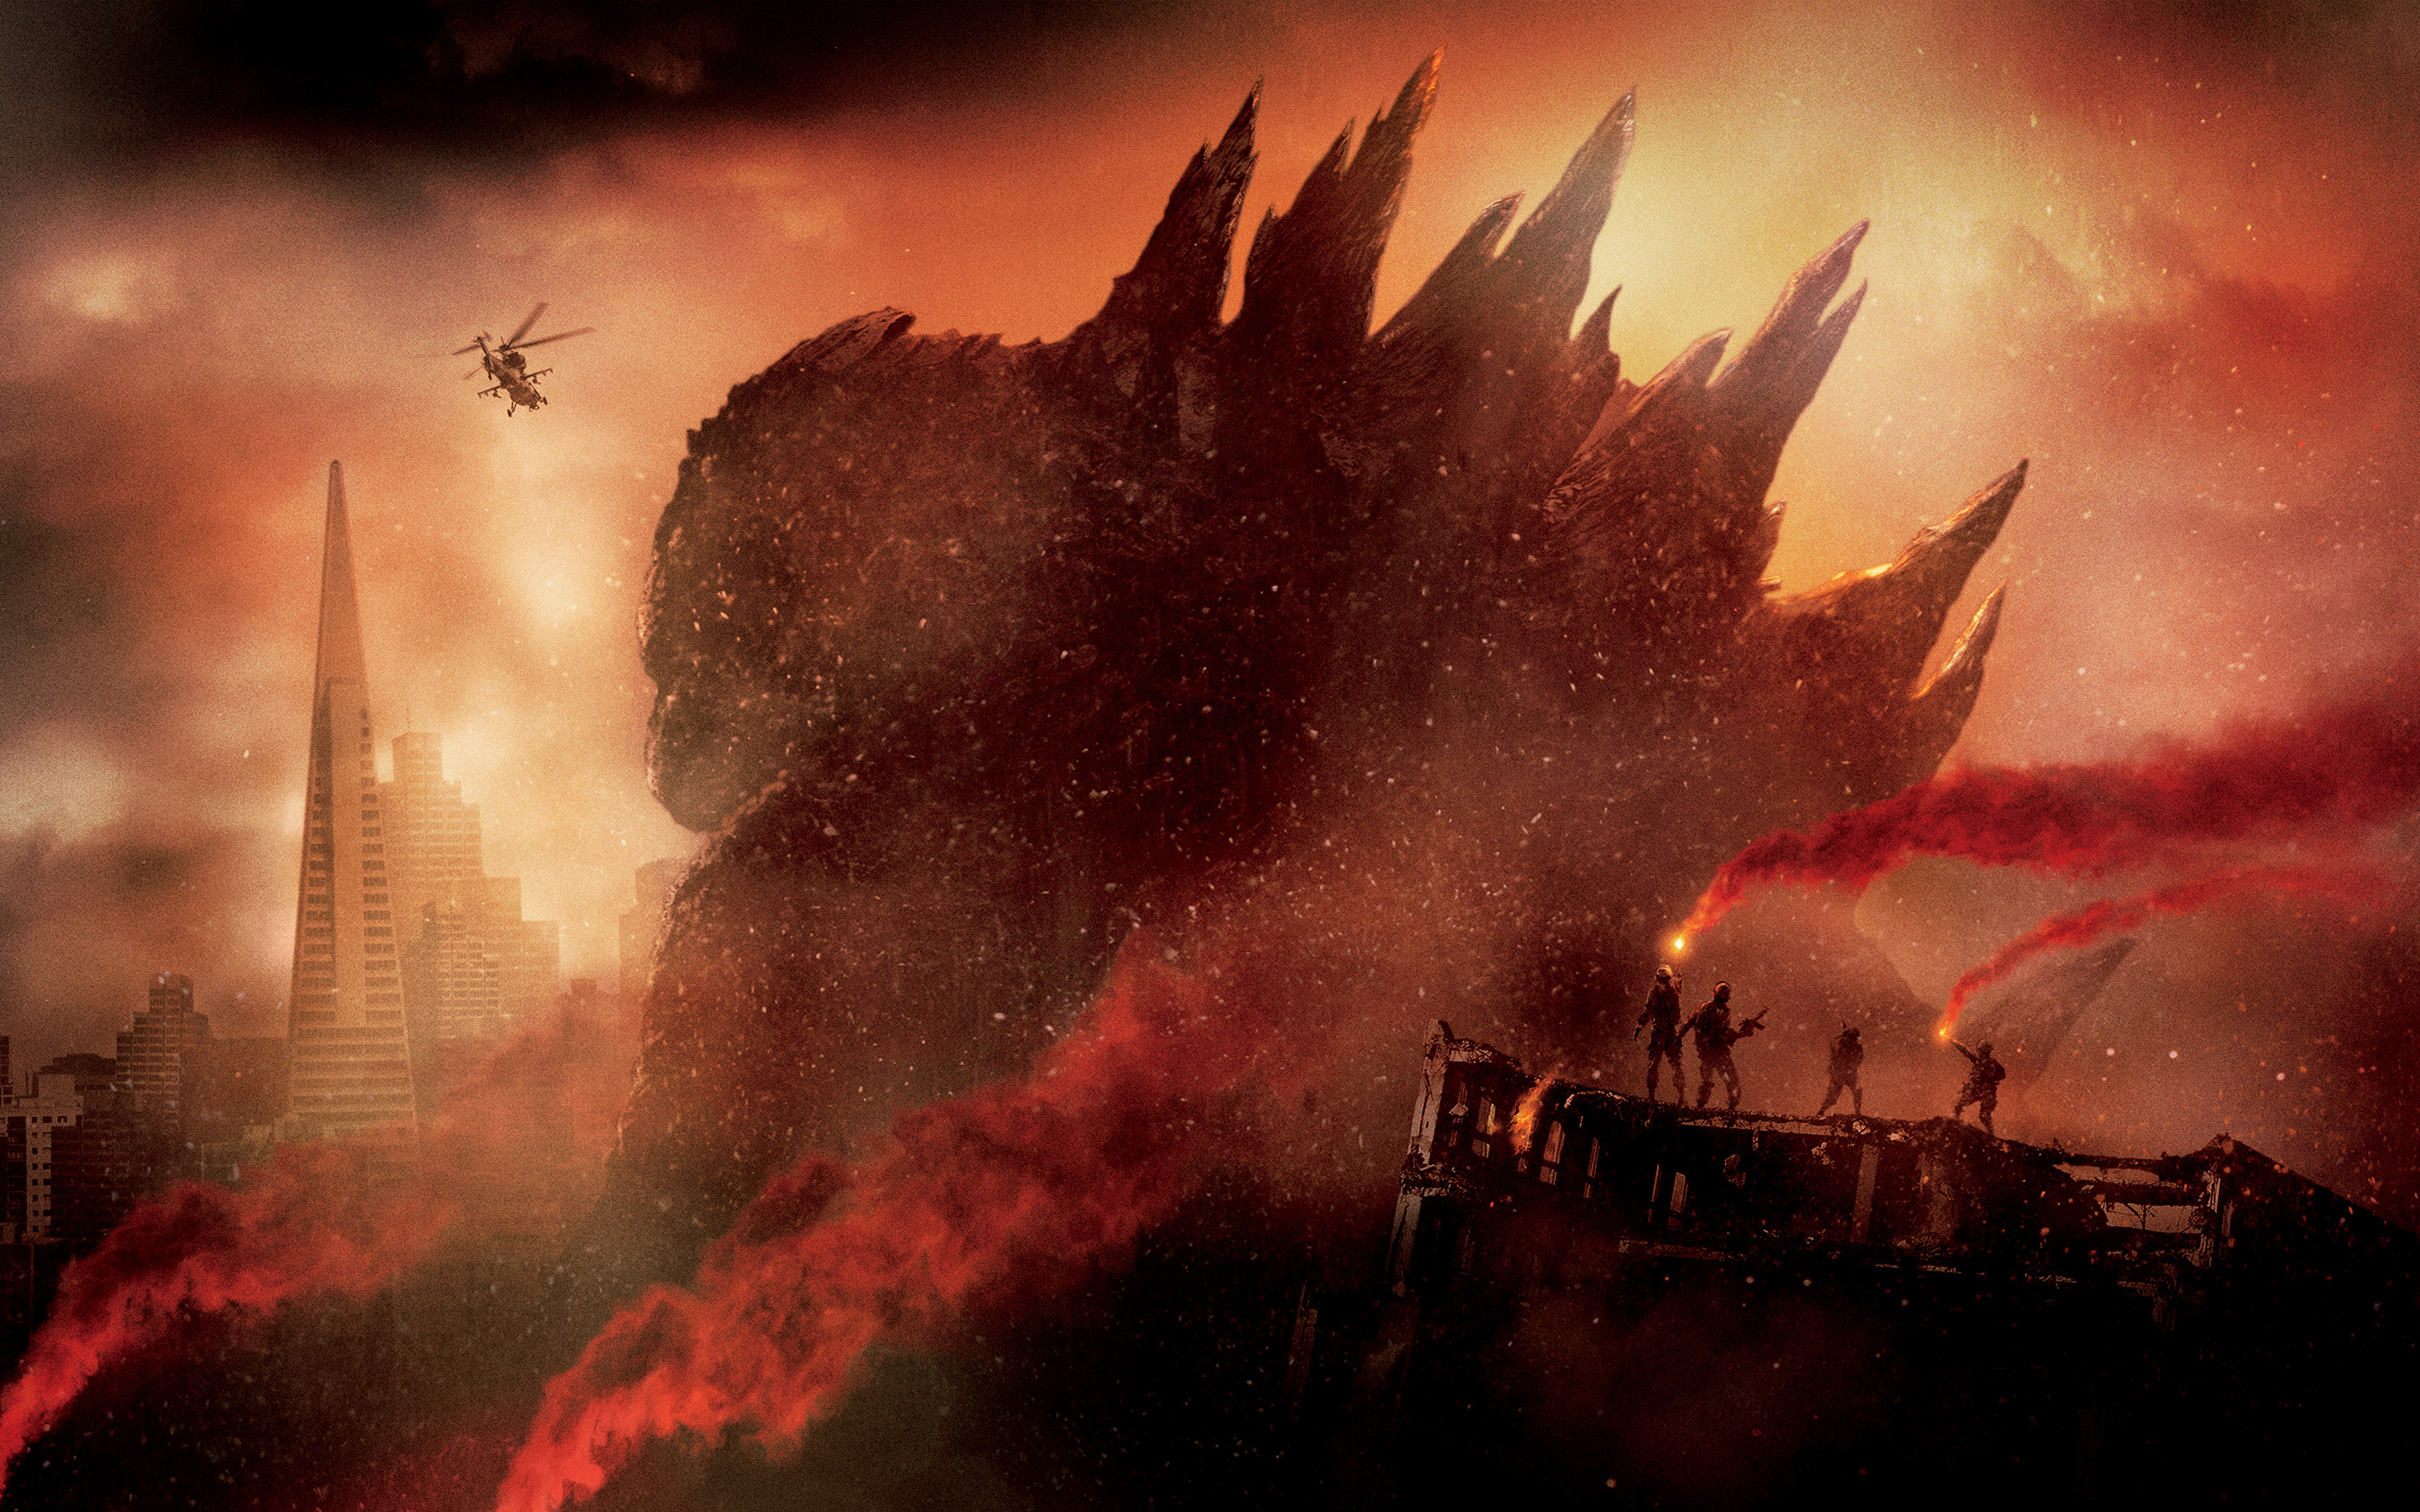 Godzilla Wallpapers HD Wallpapers 2880x1800